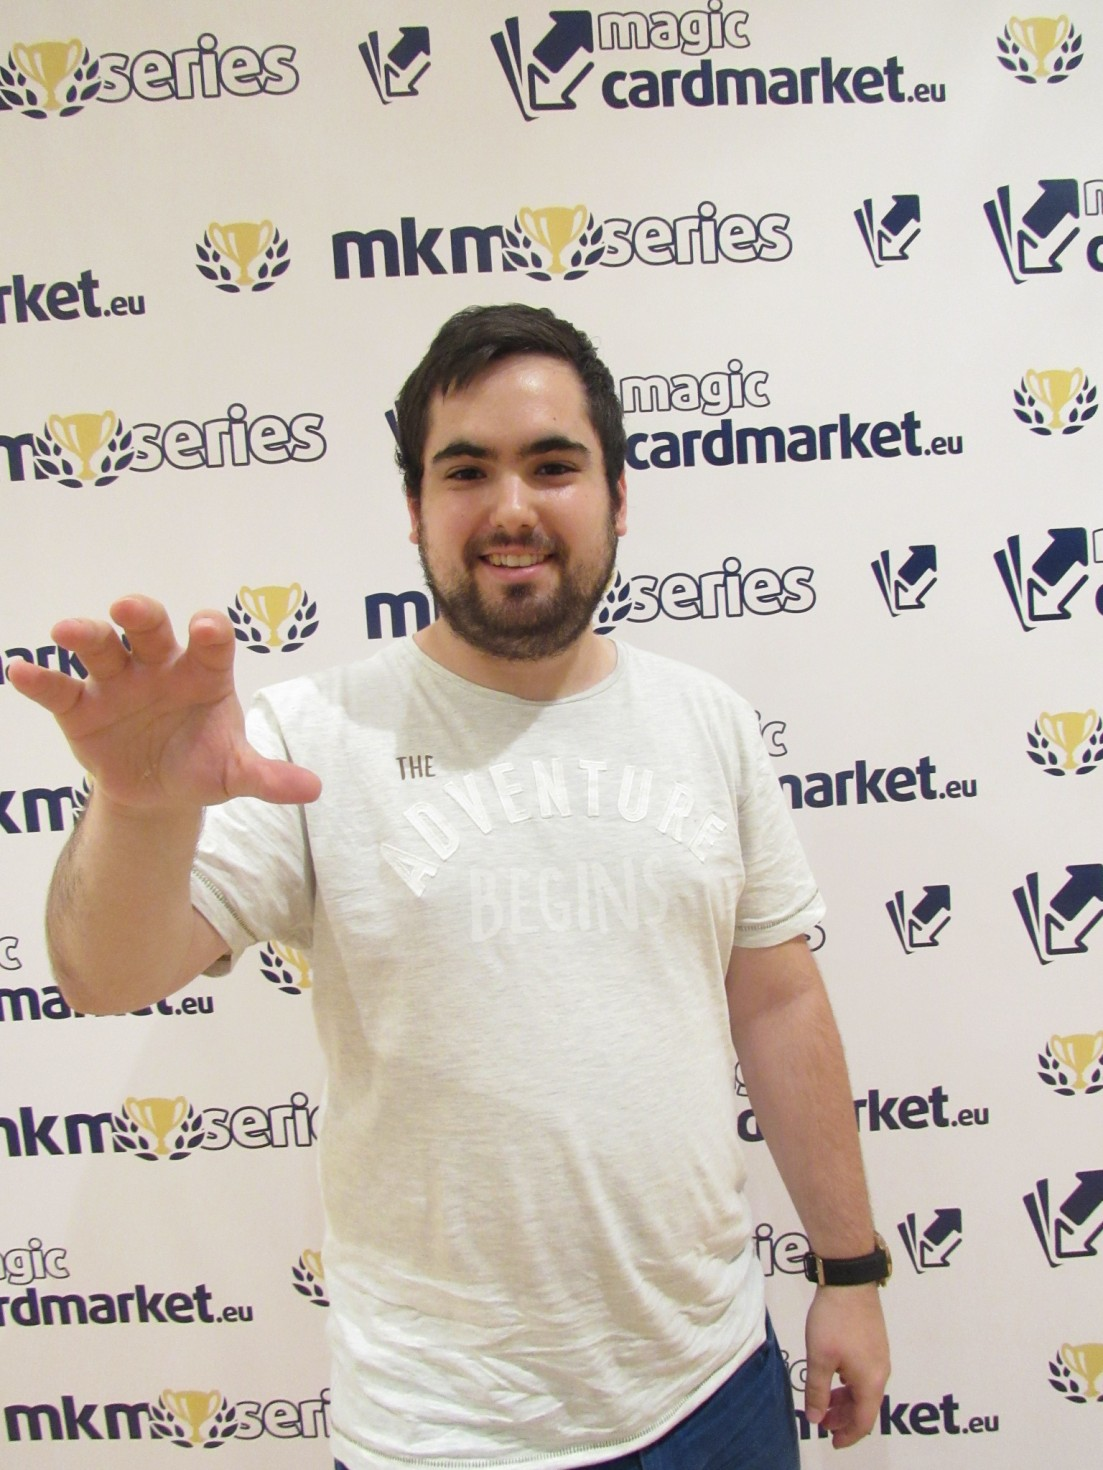 Santiago Ballestero advanced to the Top 8 of our Standard main event at MKM Series Madrid 2016!